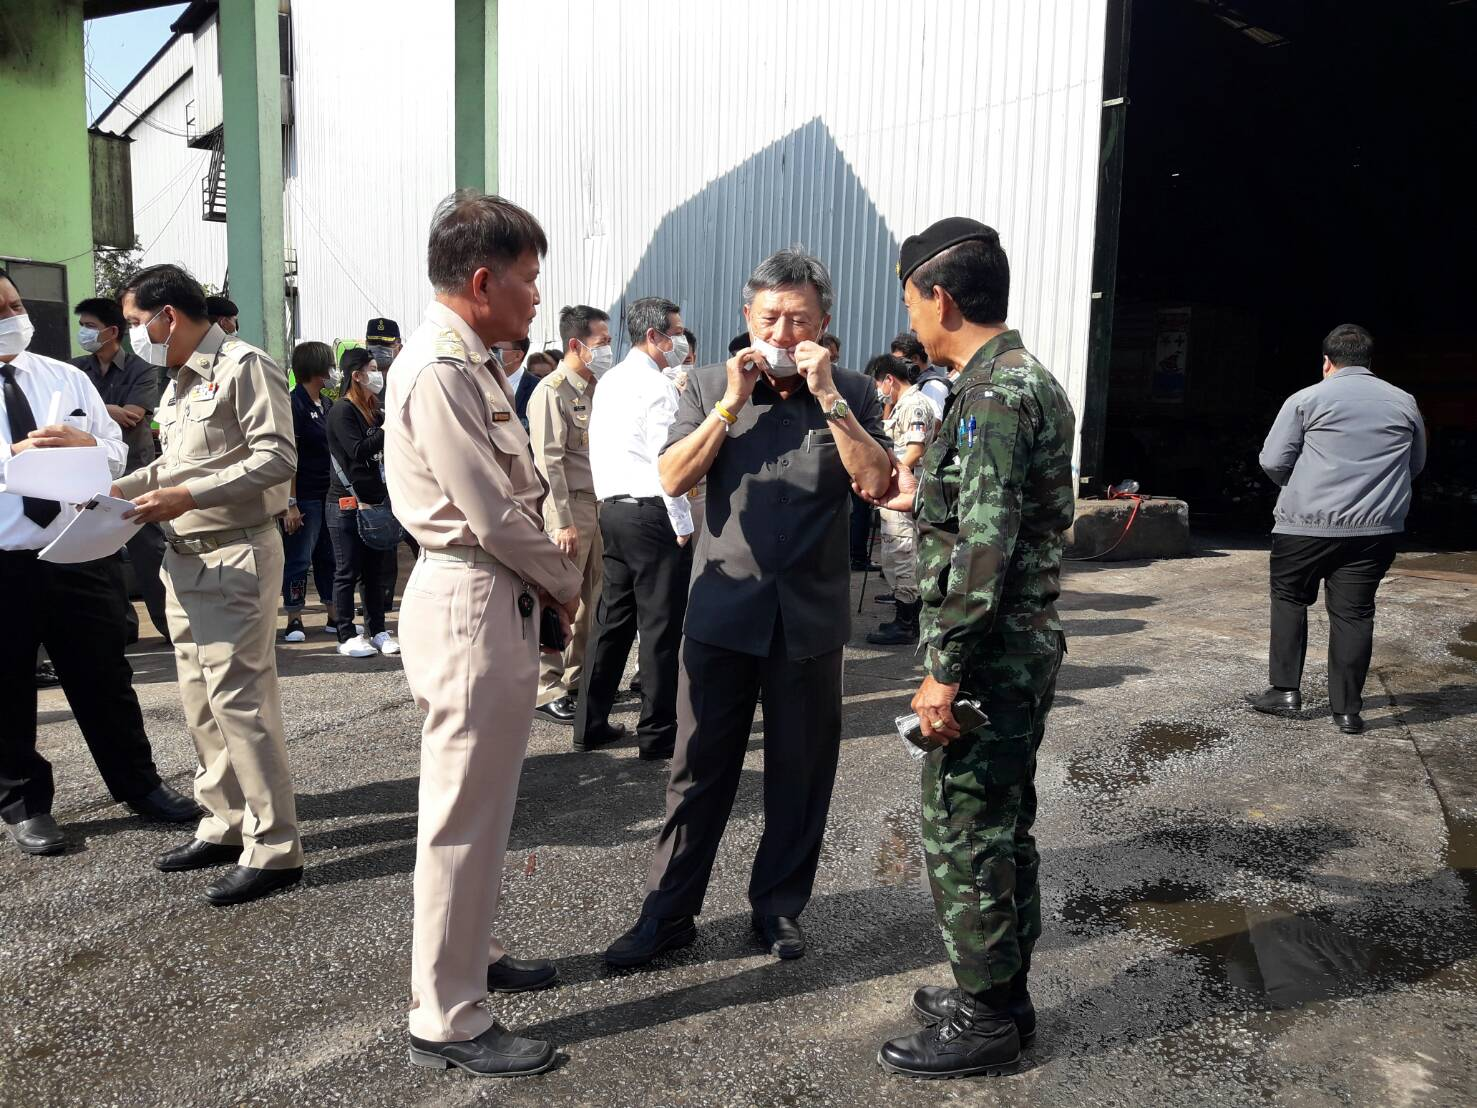 Ministry of Interior Assistant Minister Sanitwong Na Ayutthaya and ministry inspectors have ordered Pattaya to once-and-for-all solve its long-running waste-disposal problem.